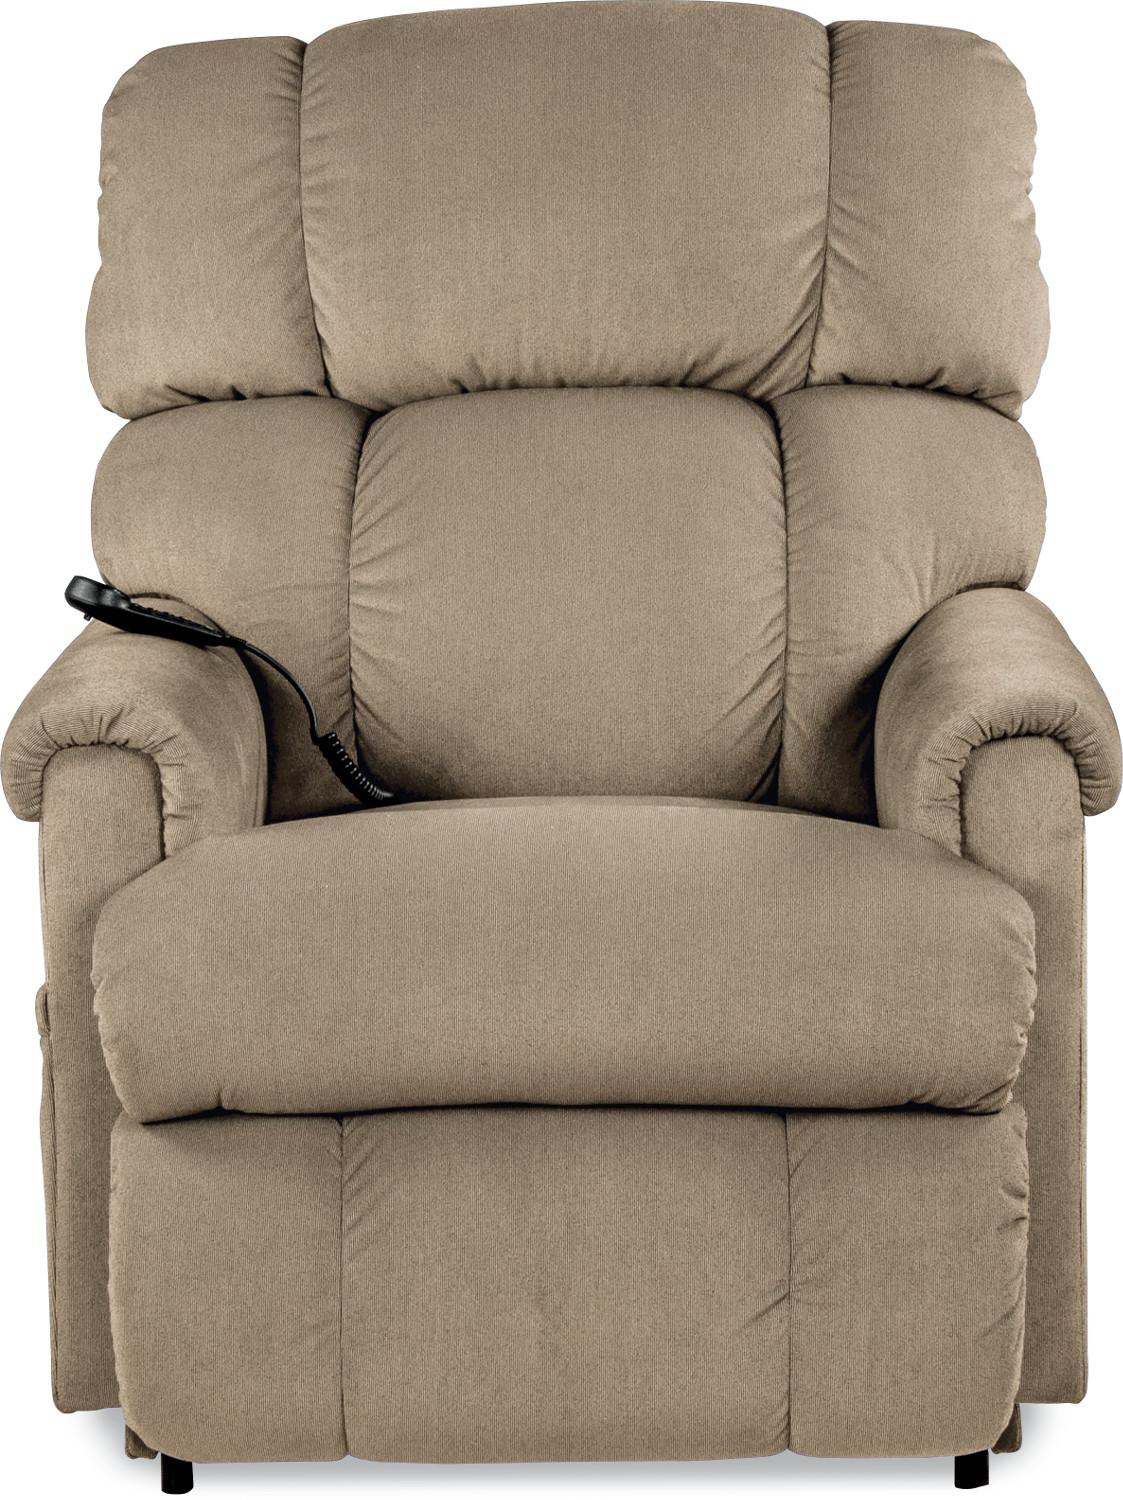 Platinum Luxury Lift® Power-Recline-XR Recliner & Platinum Luxury Lift® Power-Recline-XR Recliner by La-Z-Boy | Wolf ... islam-shia.org